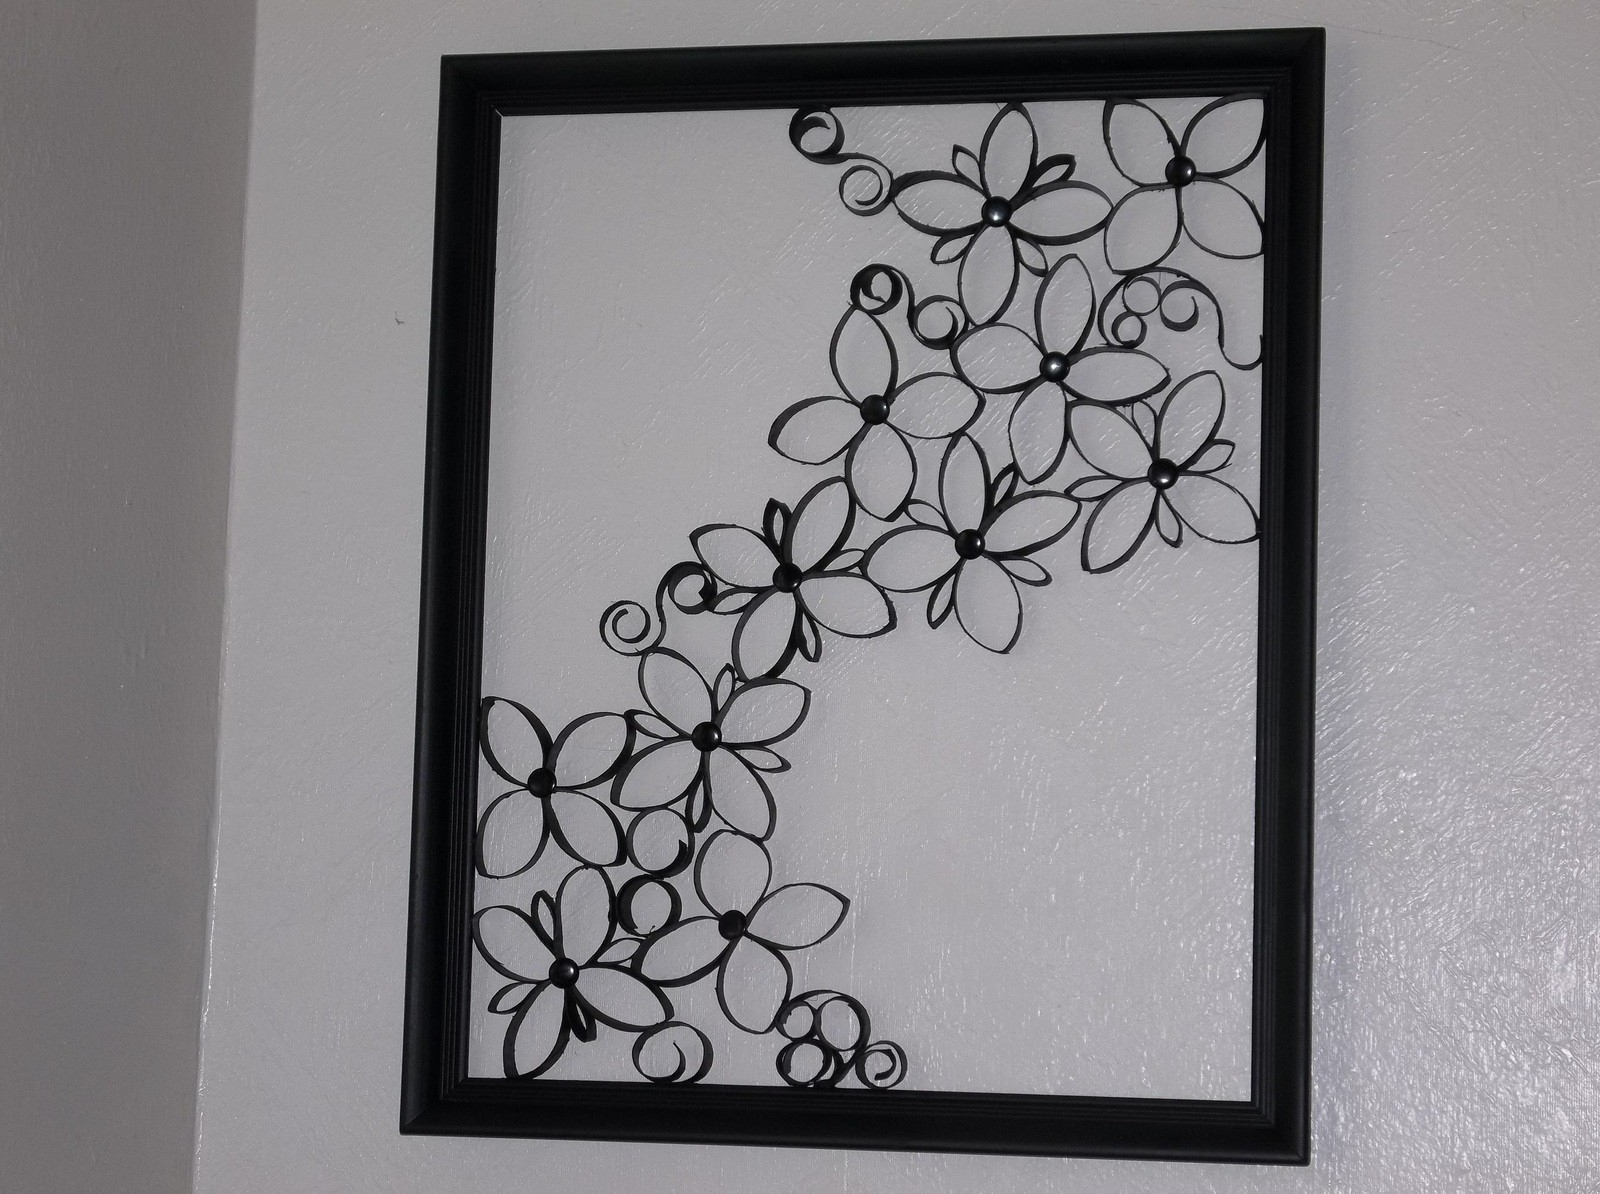 Faux Wrought Iron Wall Art For Under $5 · How To Make A Paper Roll For Current Iron Wall Art (View 9 of 20)